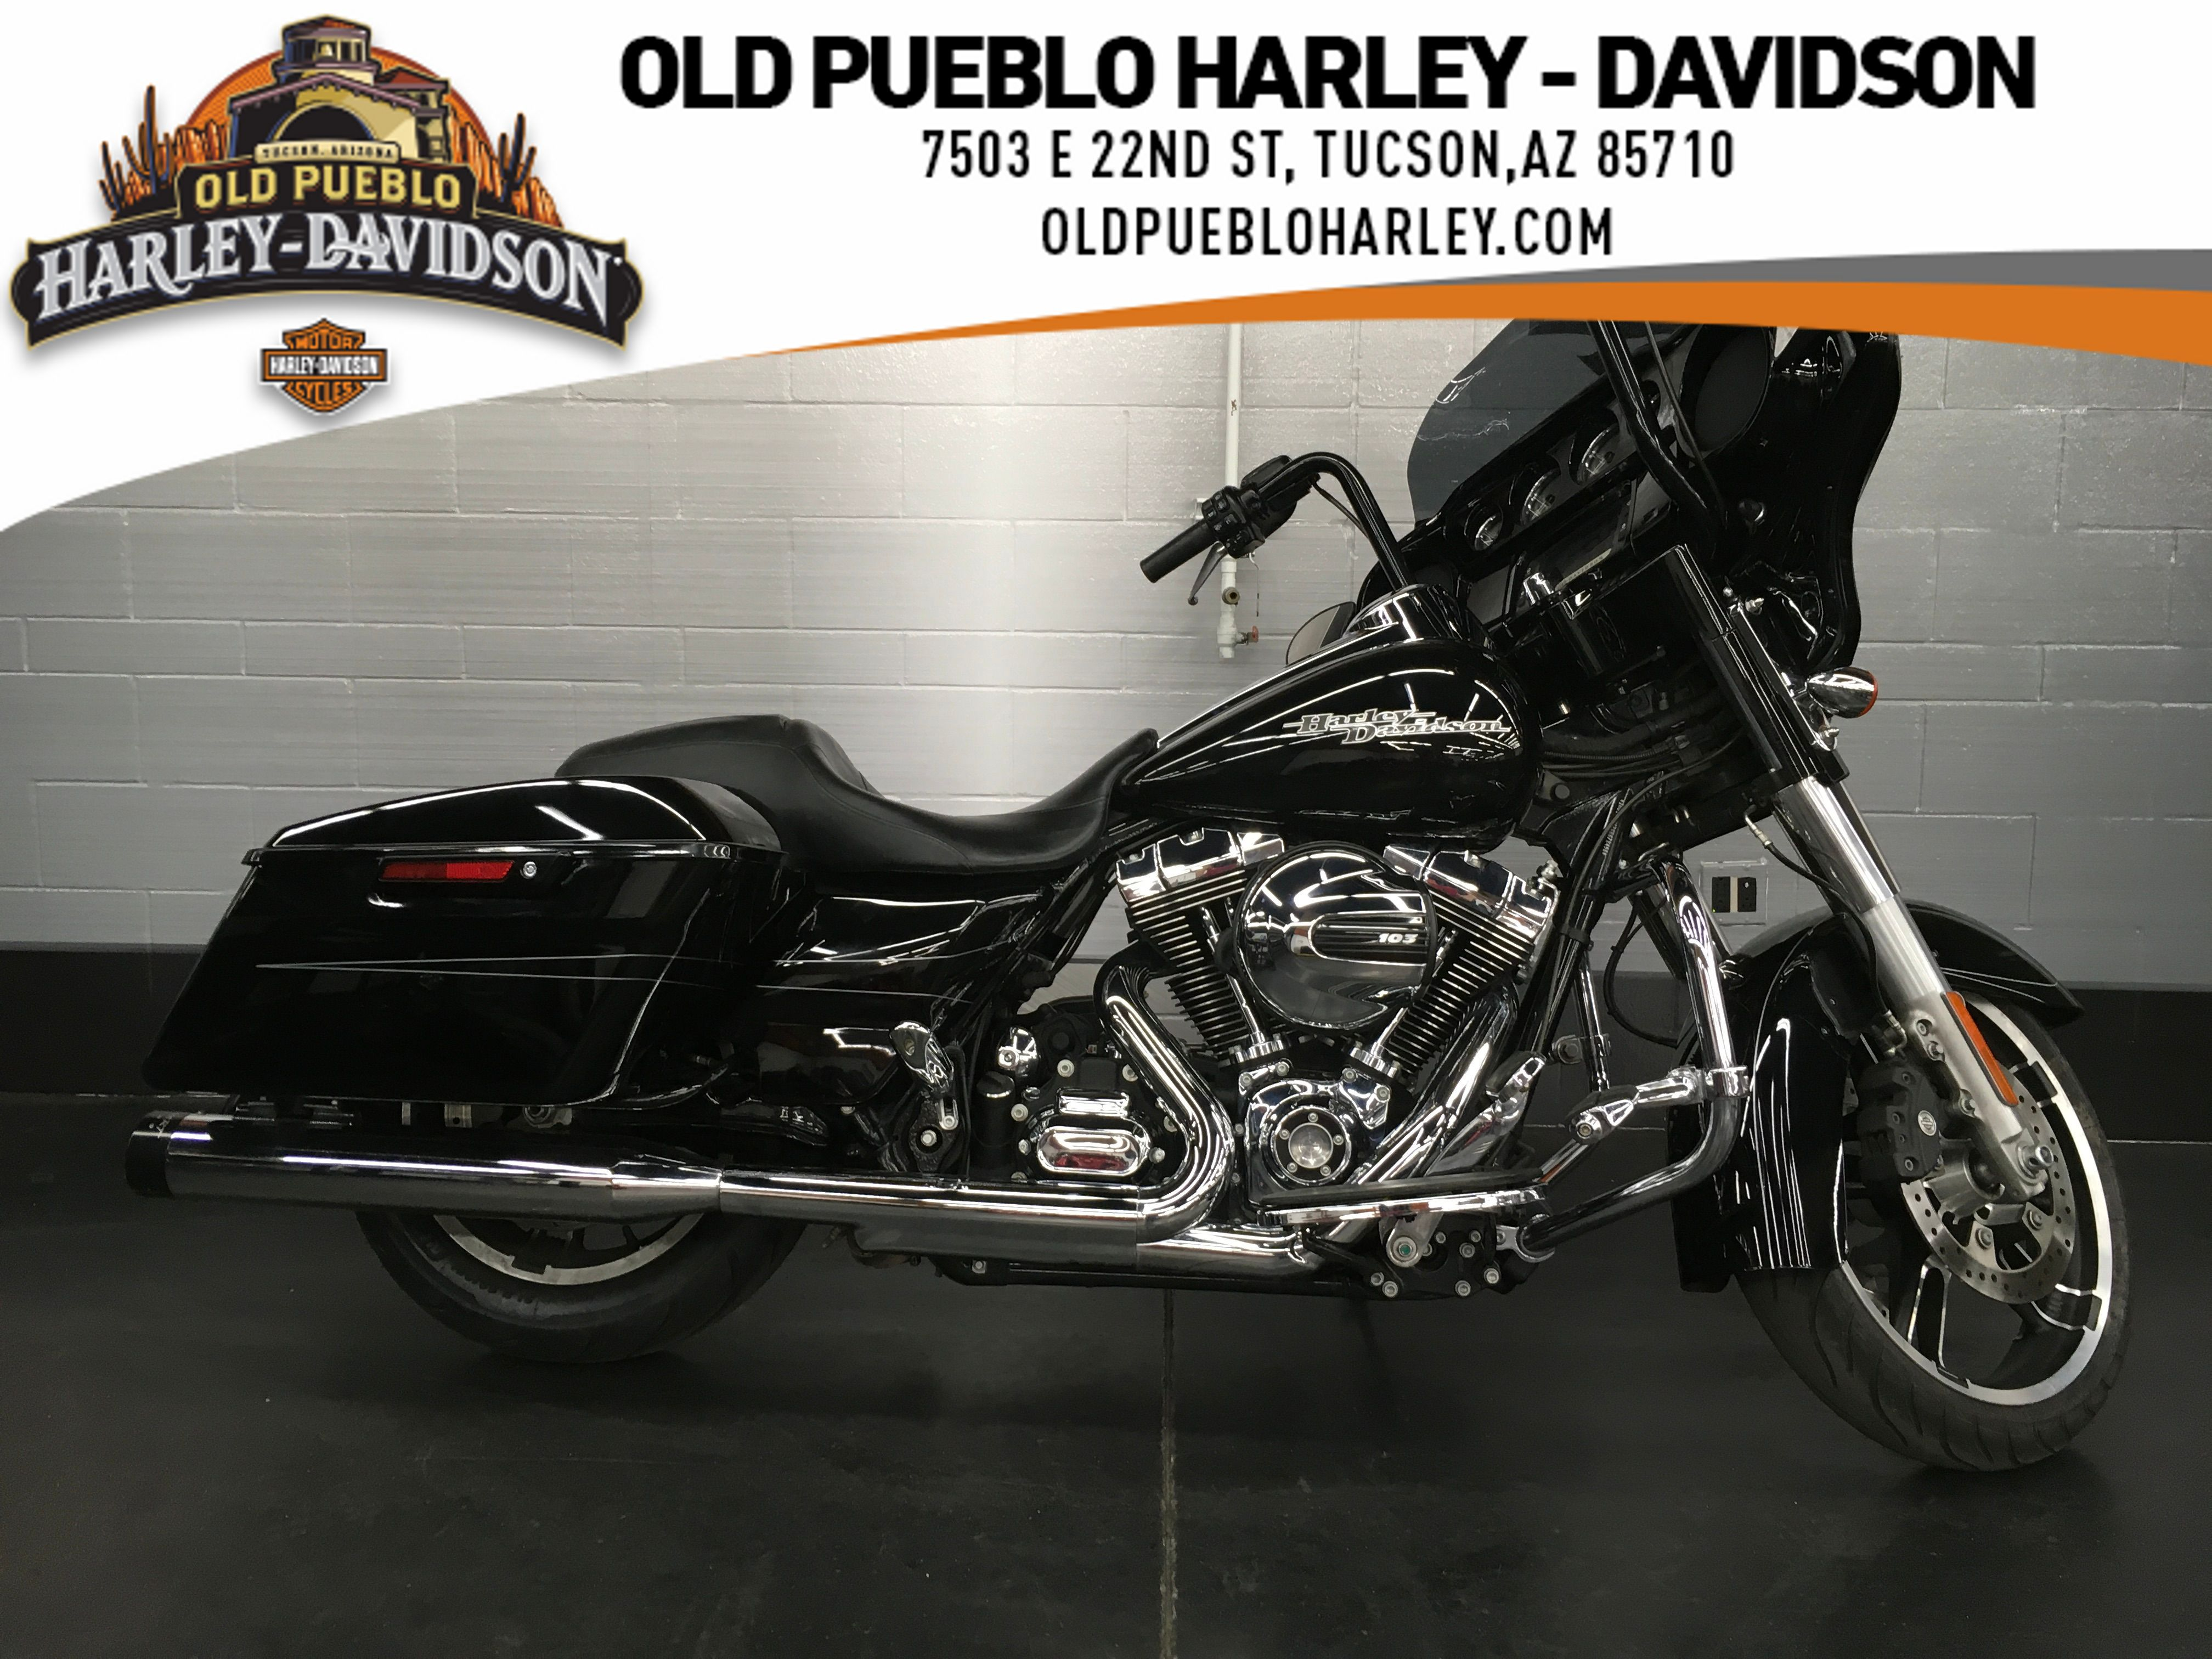 Pre-Owned 2016 Harley-Davidson Touring Street Glide Special FLHXS